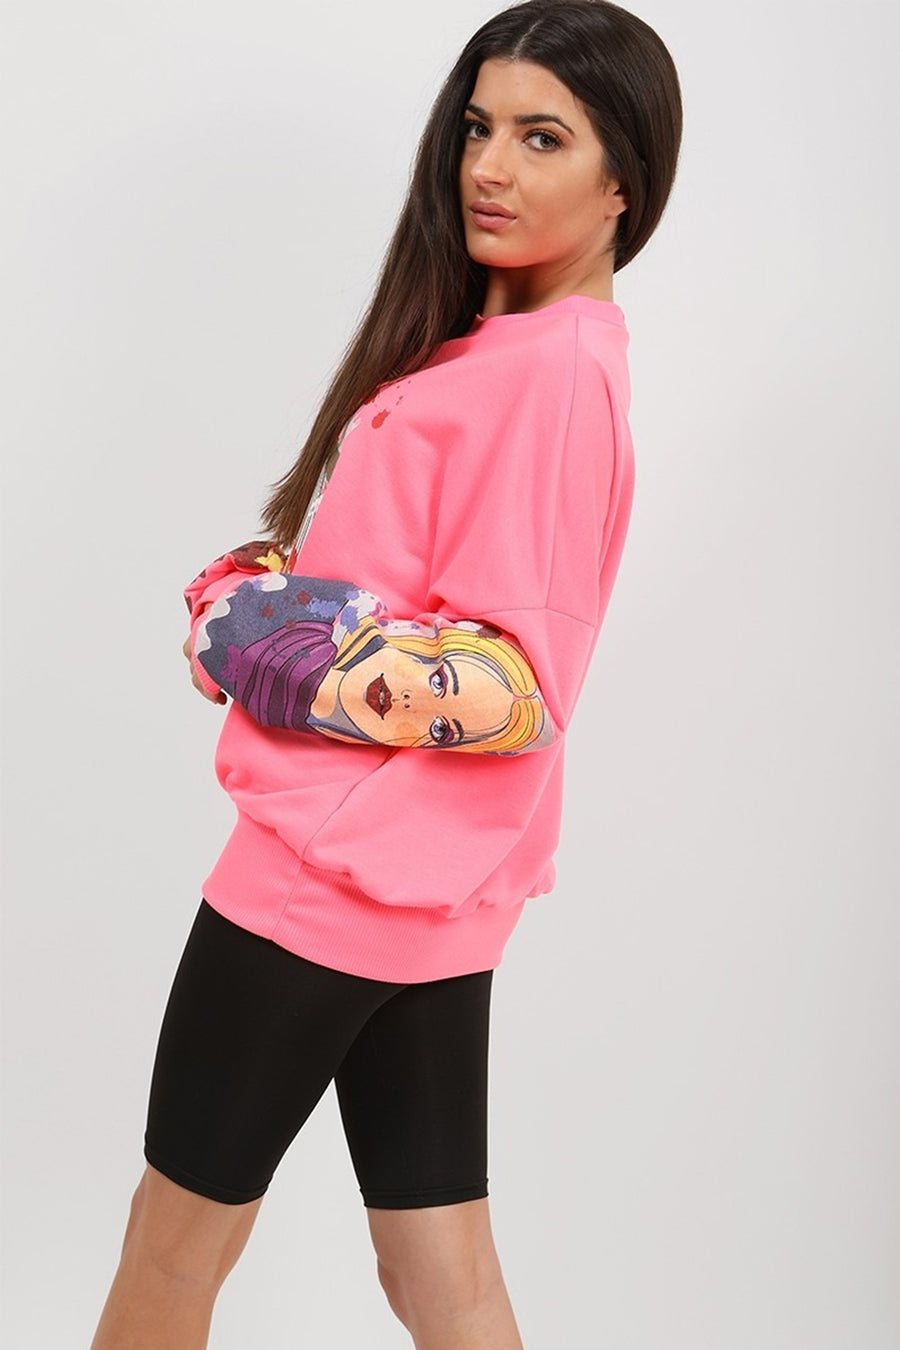 Neon Pink Face Pop Art Graphic Sweatshirt Jumper - Micah